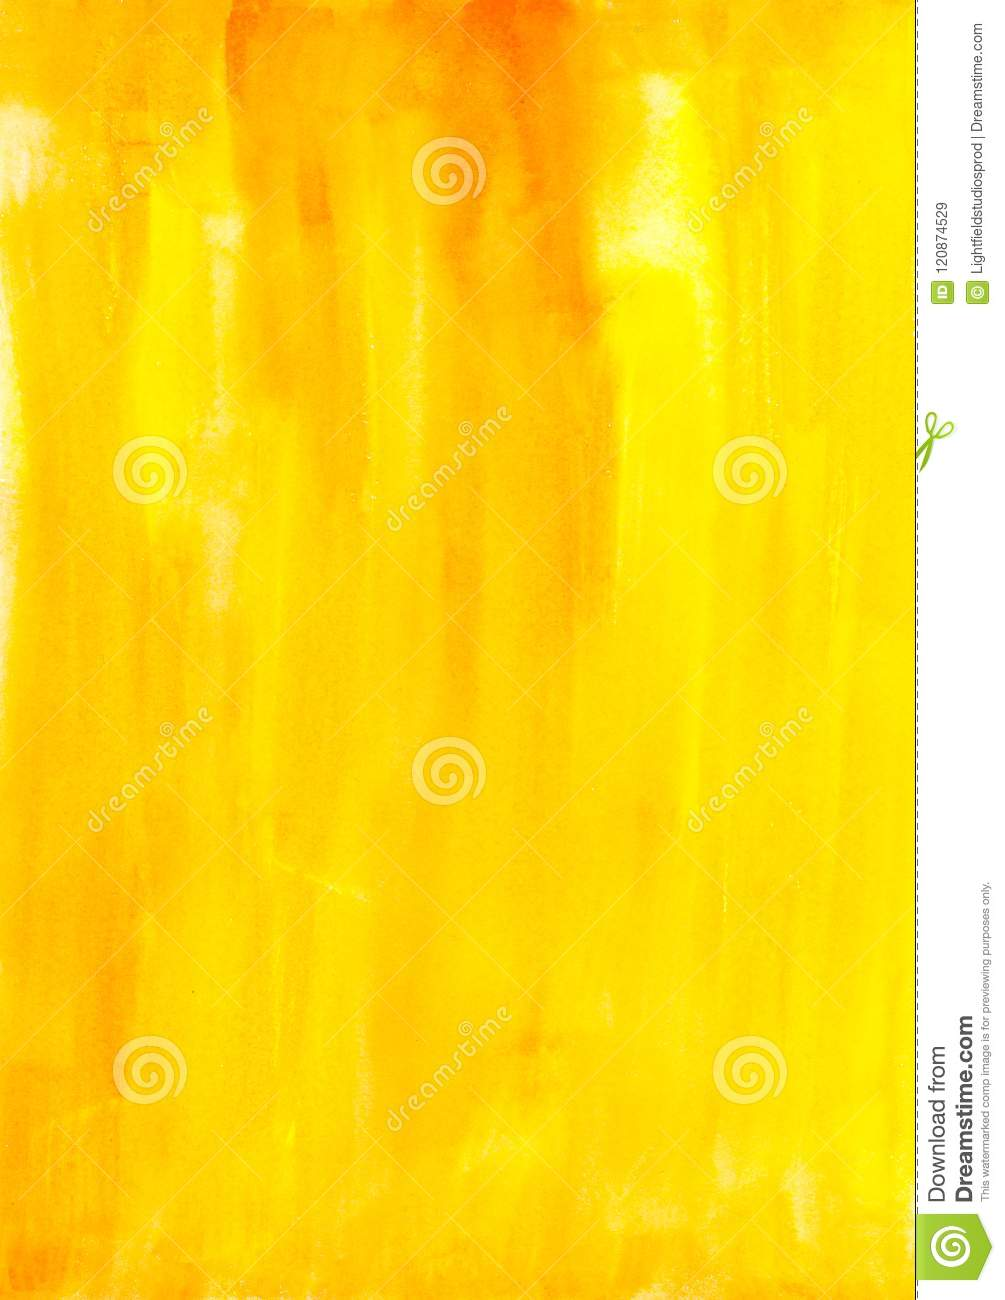 Abstract painting with bright yellow paint strokes,